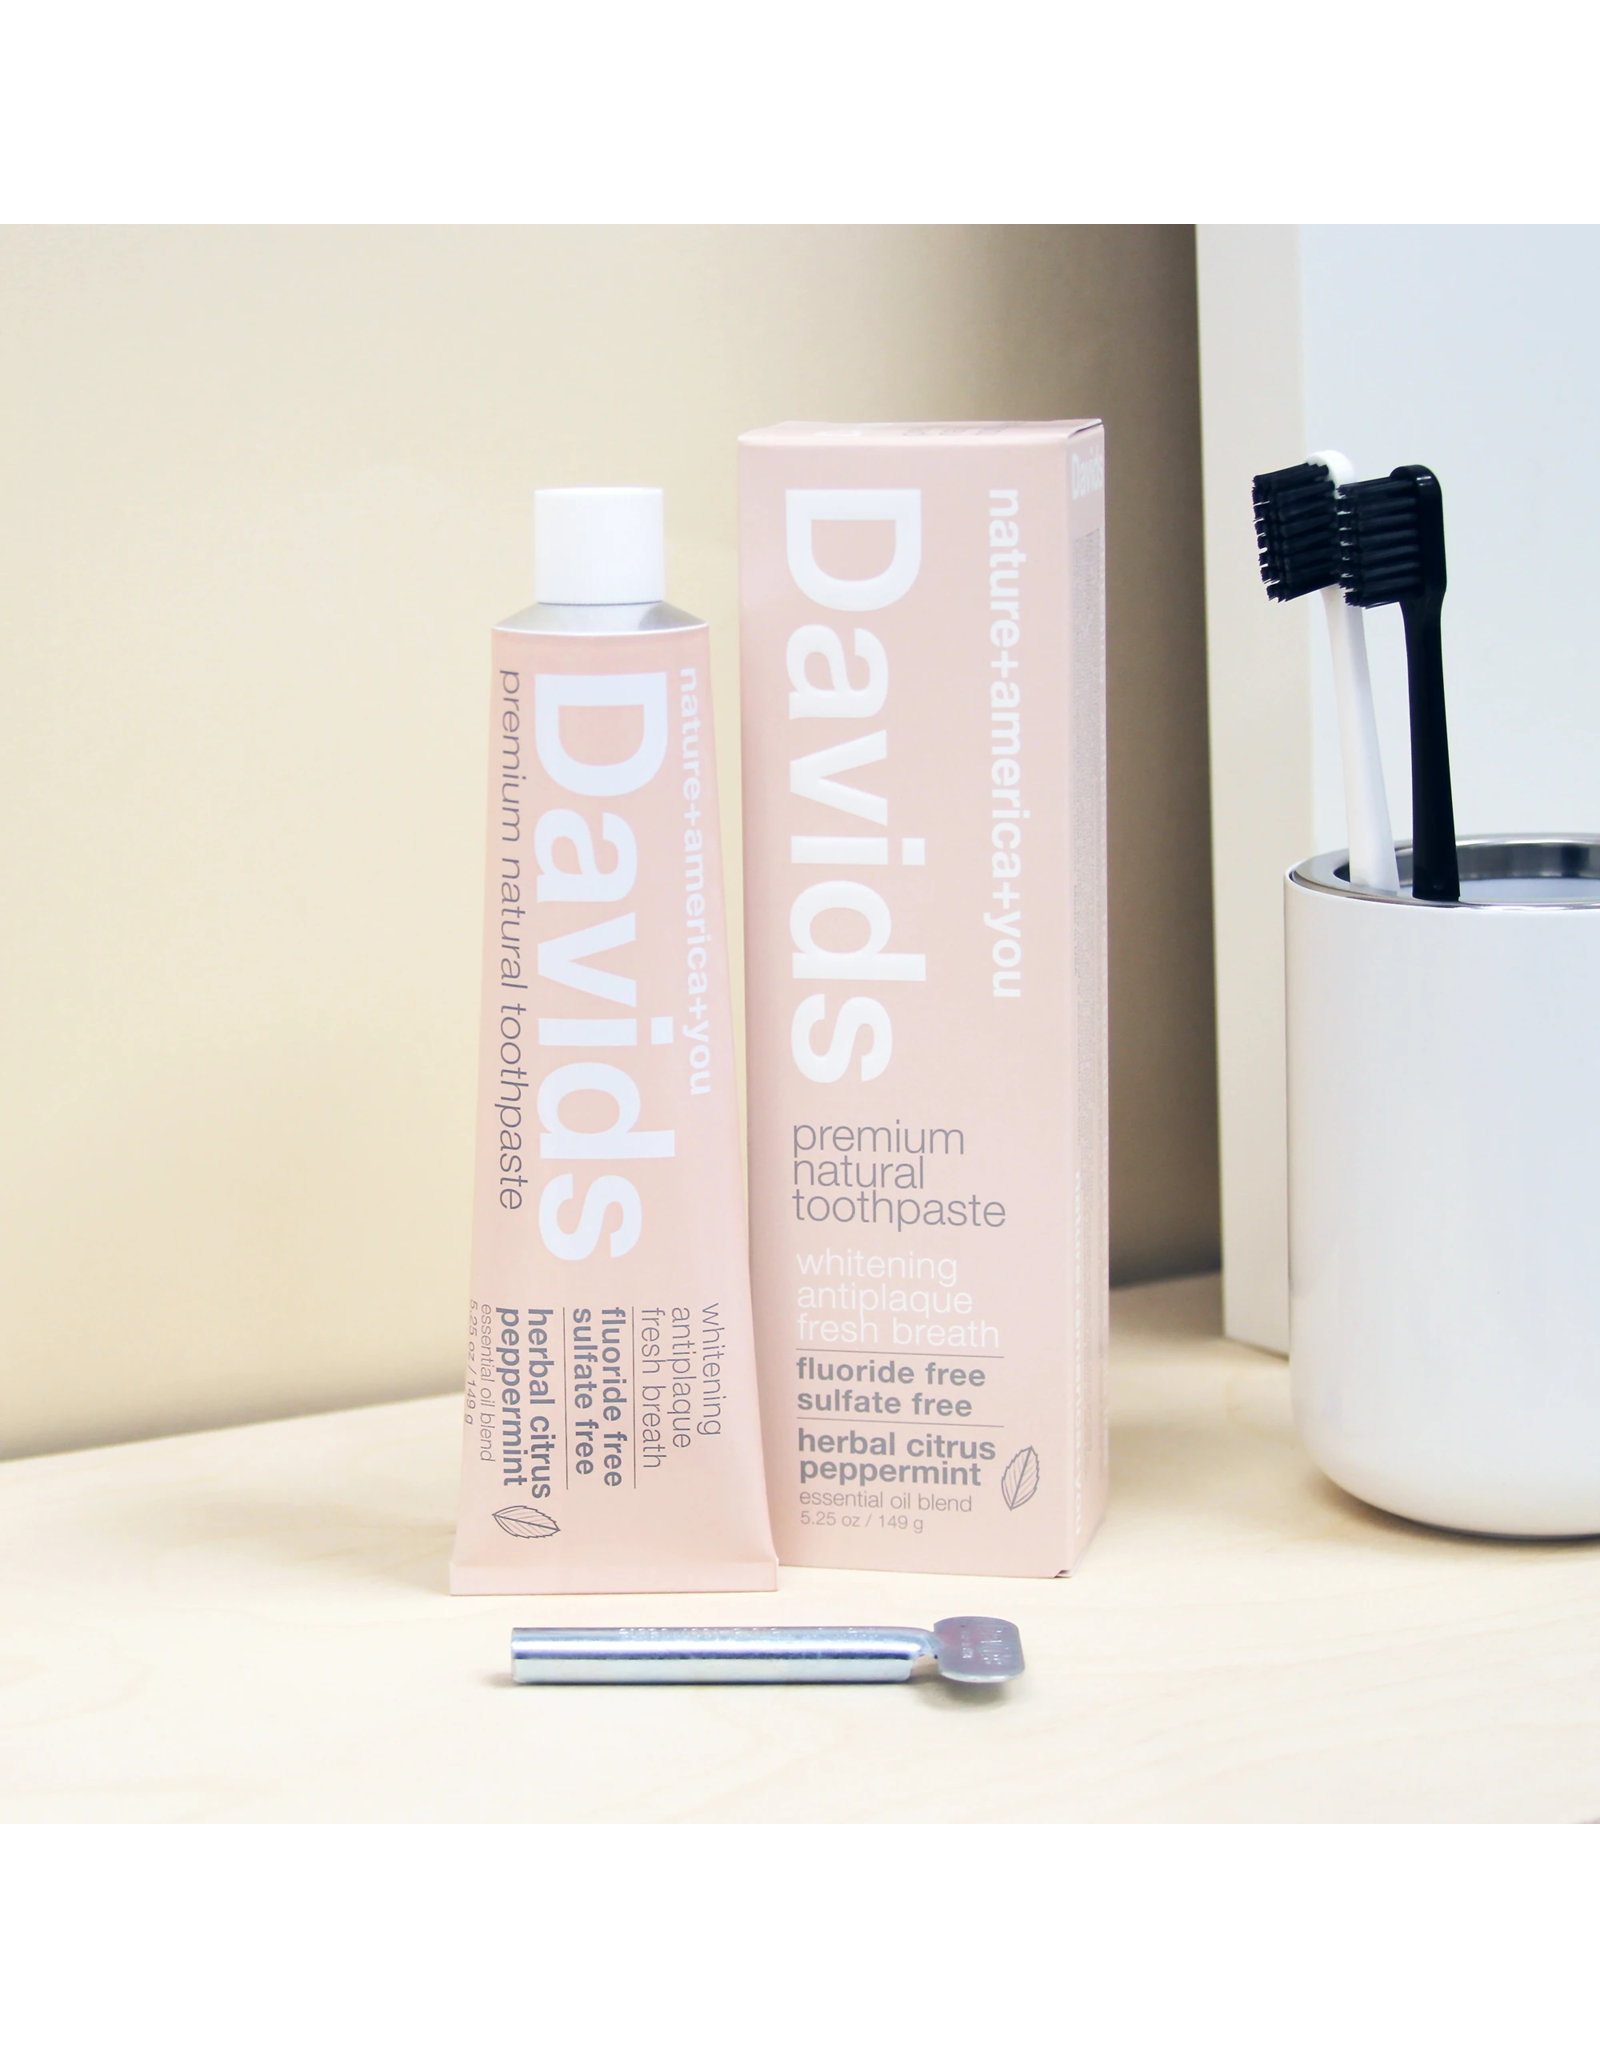 David's Davids Premium Natural Toothpaste - Herbal Citrus Peppermint